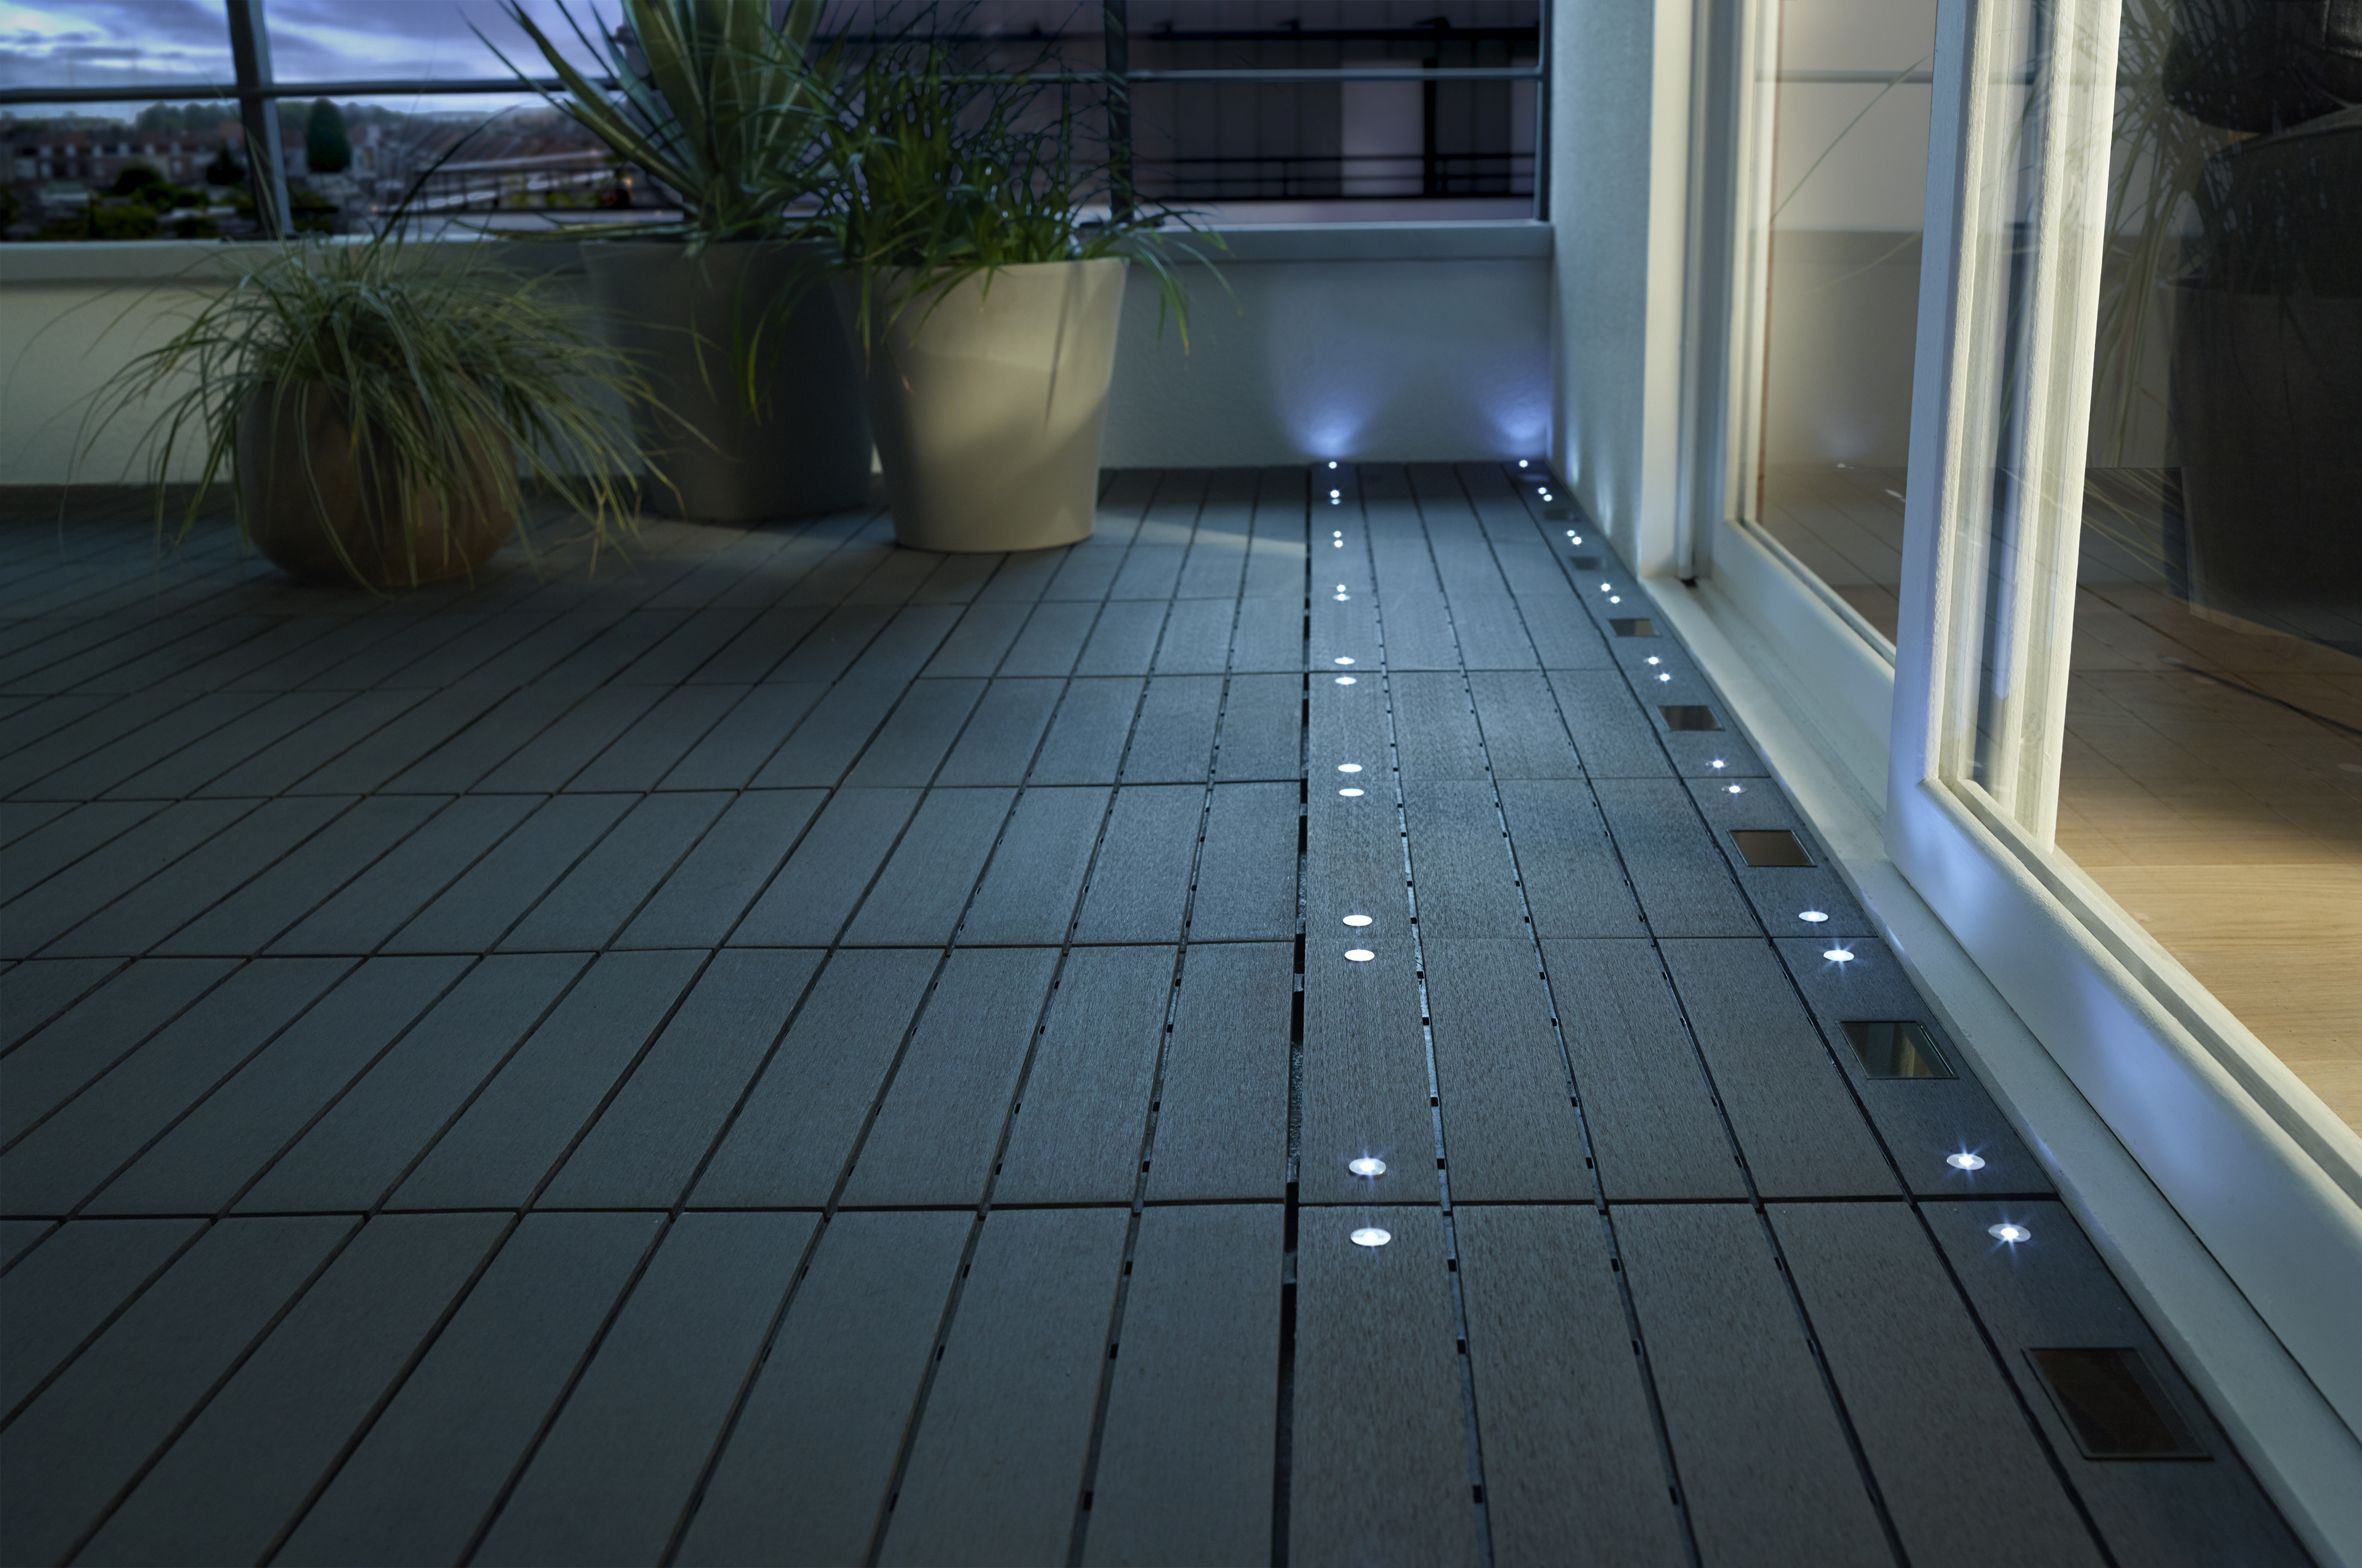 Dalle blooma emboitable en composite avec led castorama for Luminaire terrasse bois